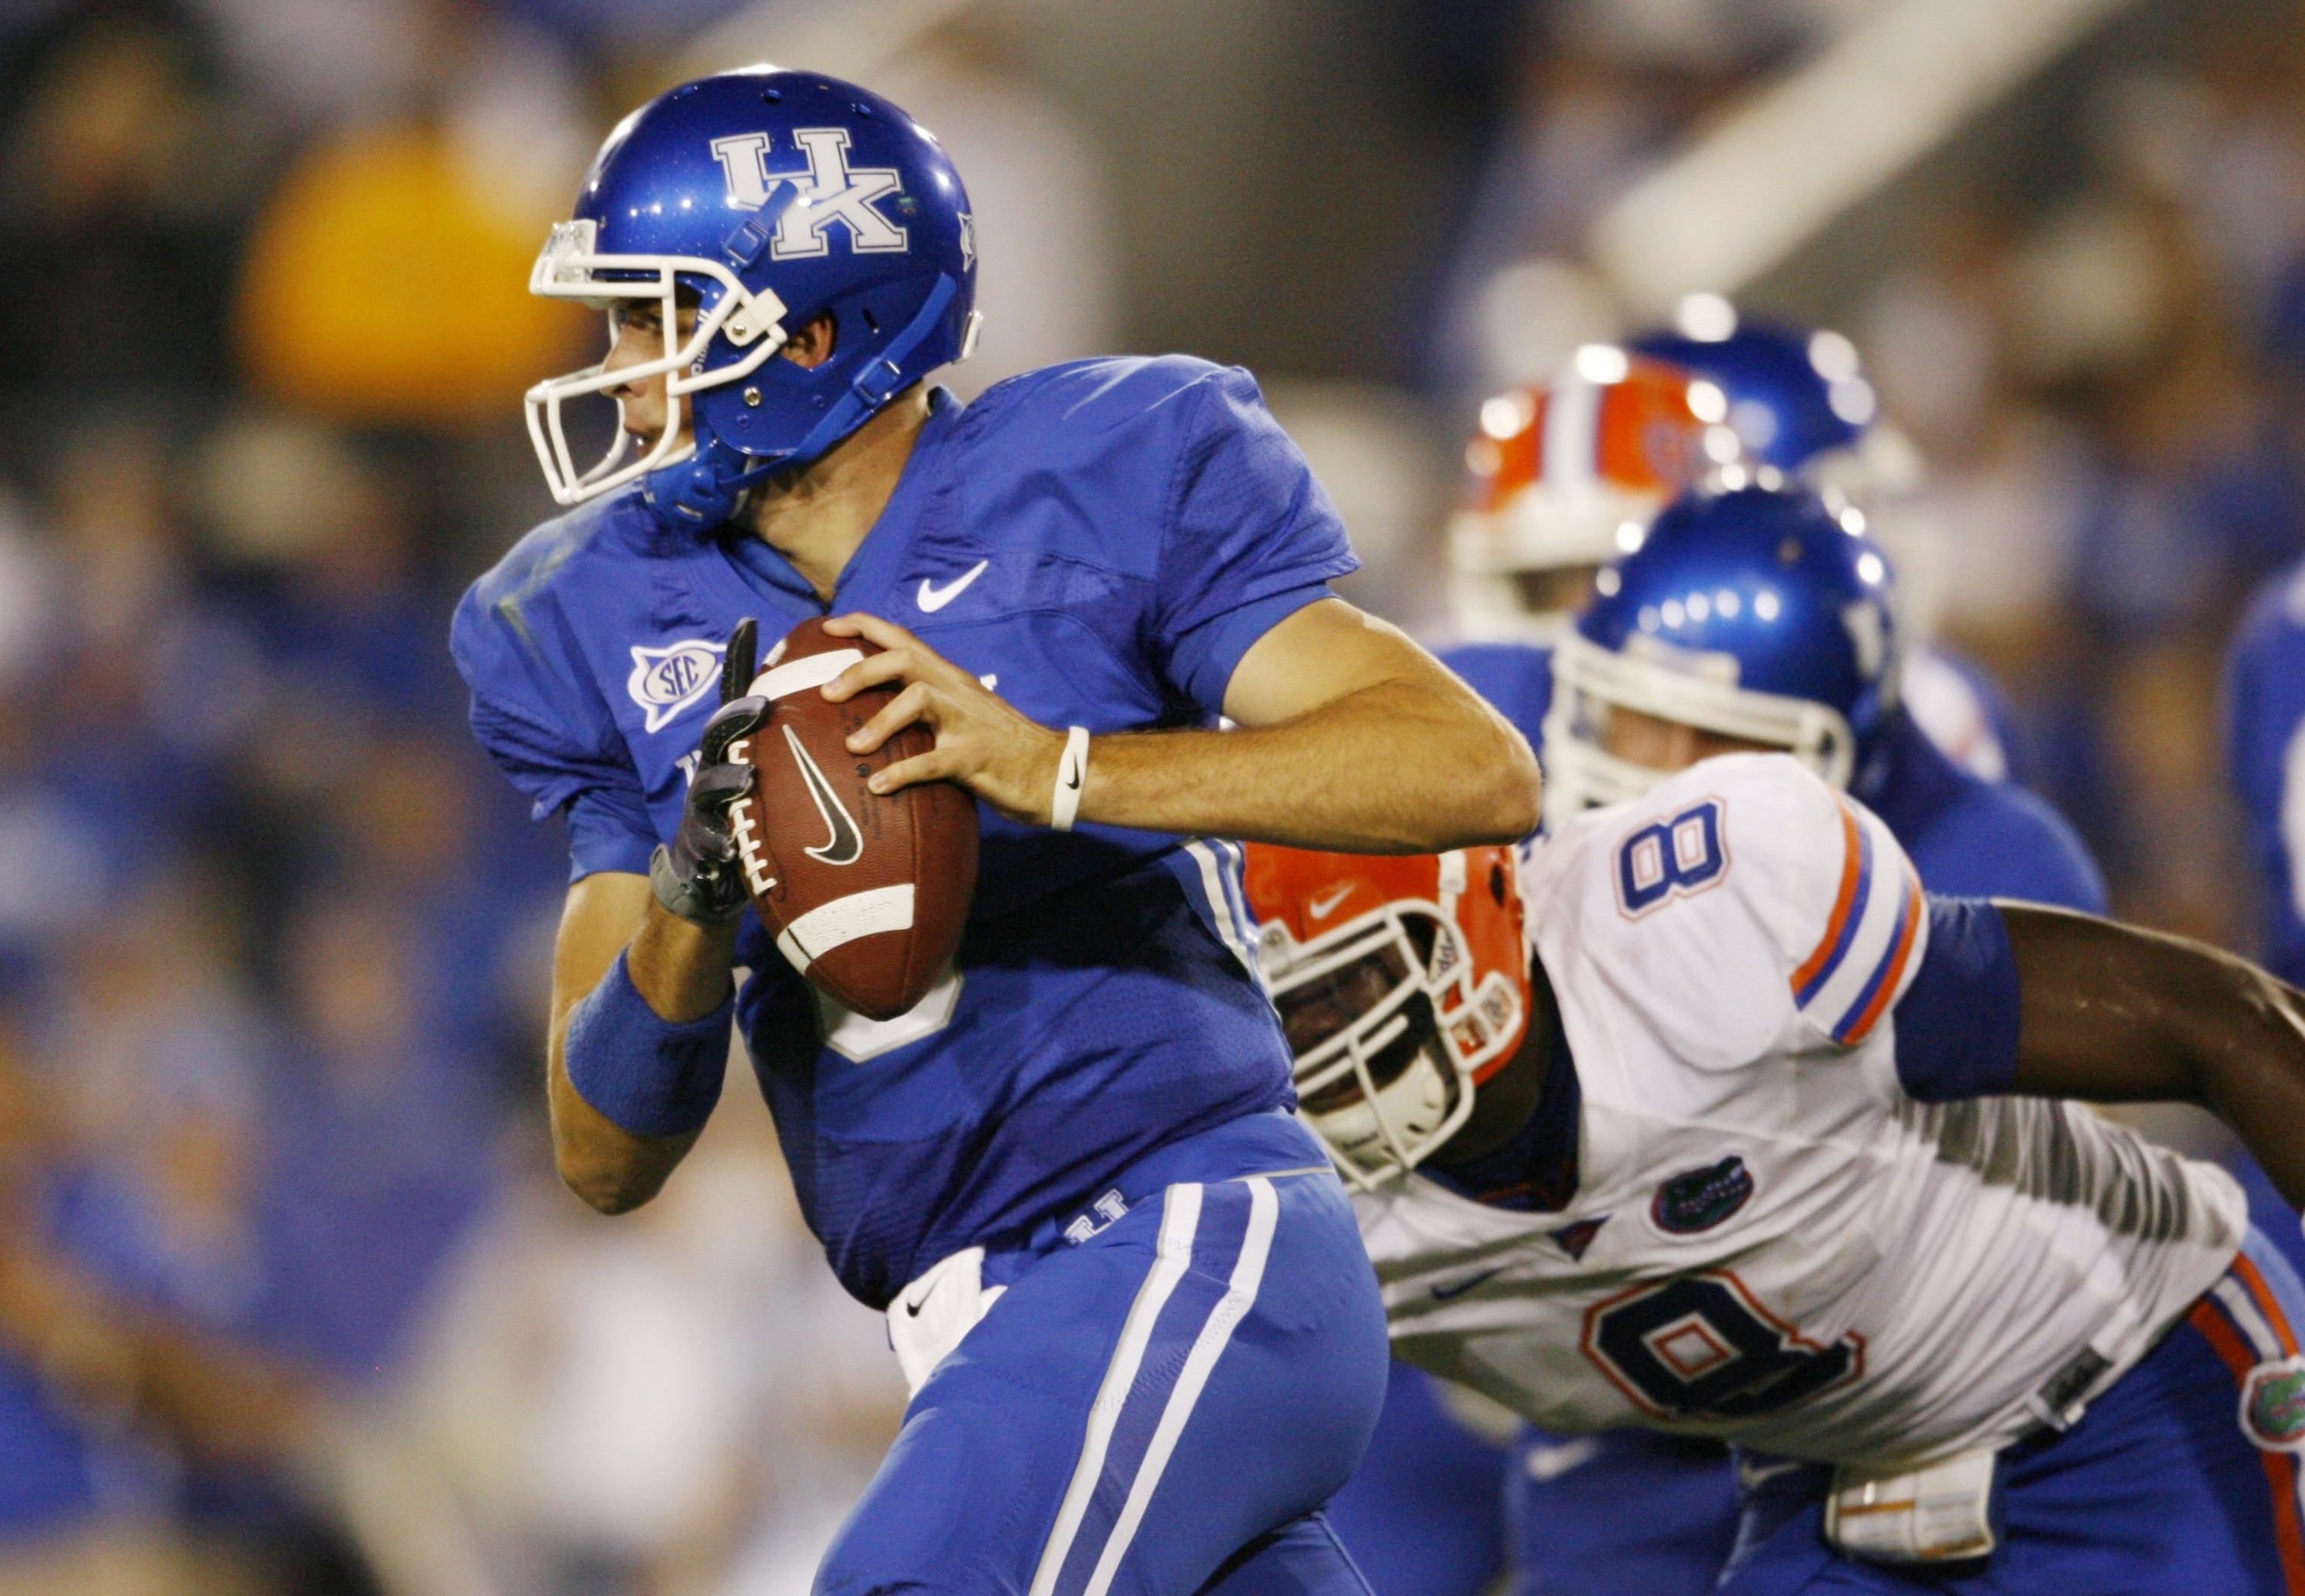 LEXINGTON, KY - SEPTEMBER 26: Quarterback Mike Hartline #5 of the Kentucky Wildcats looks to pass during the third quarter of the game against the Florida Gators at Commonwealth Stadium on September 26, 2009 in Lexington, Kentucky. (Photo by Andy Lyons/Ge